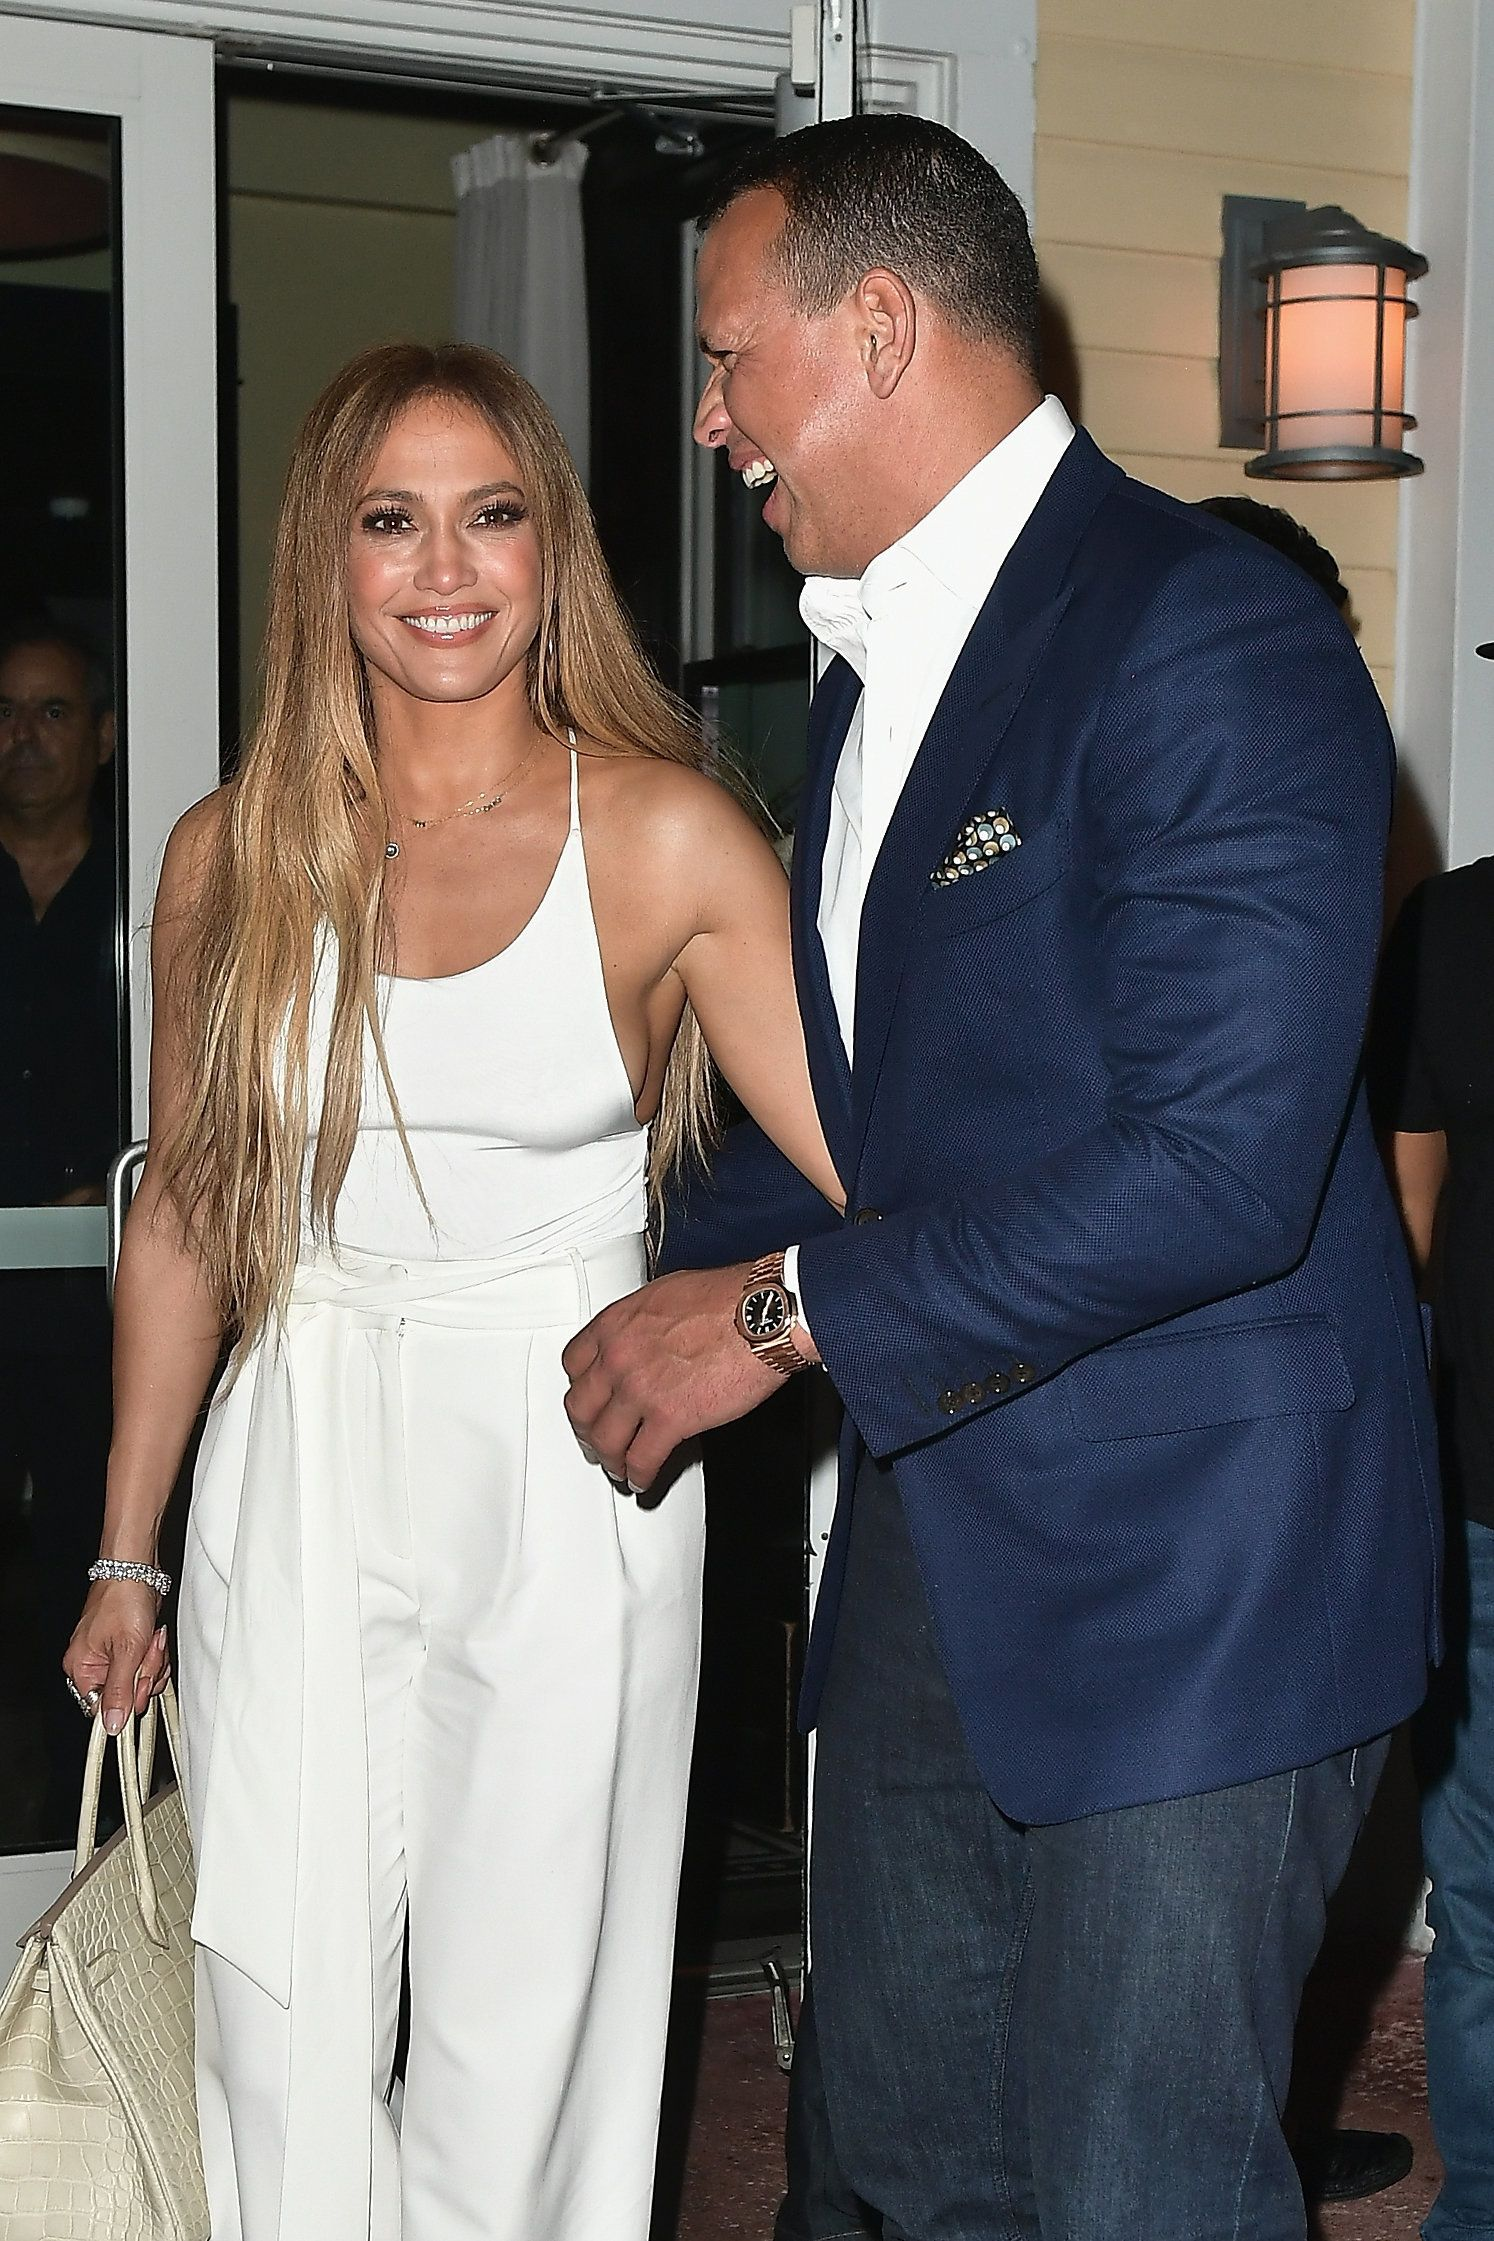 MIAMI, FL - JULY 23:  (Exclusive Coverage) Jennifer Lopez and Alex Rodriguez attend Prime 112 Restaurant on July 23, 2017 in Miami, Florida.  (Photo by Gustavo Caballero/GC Images)